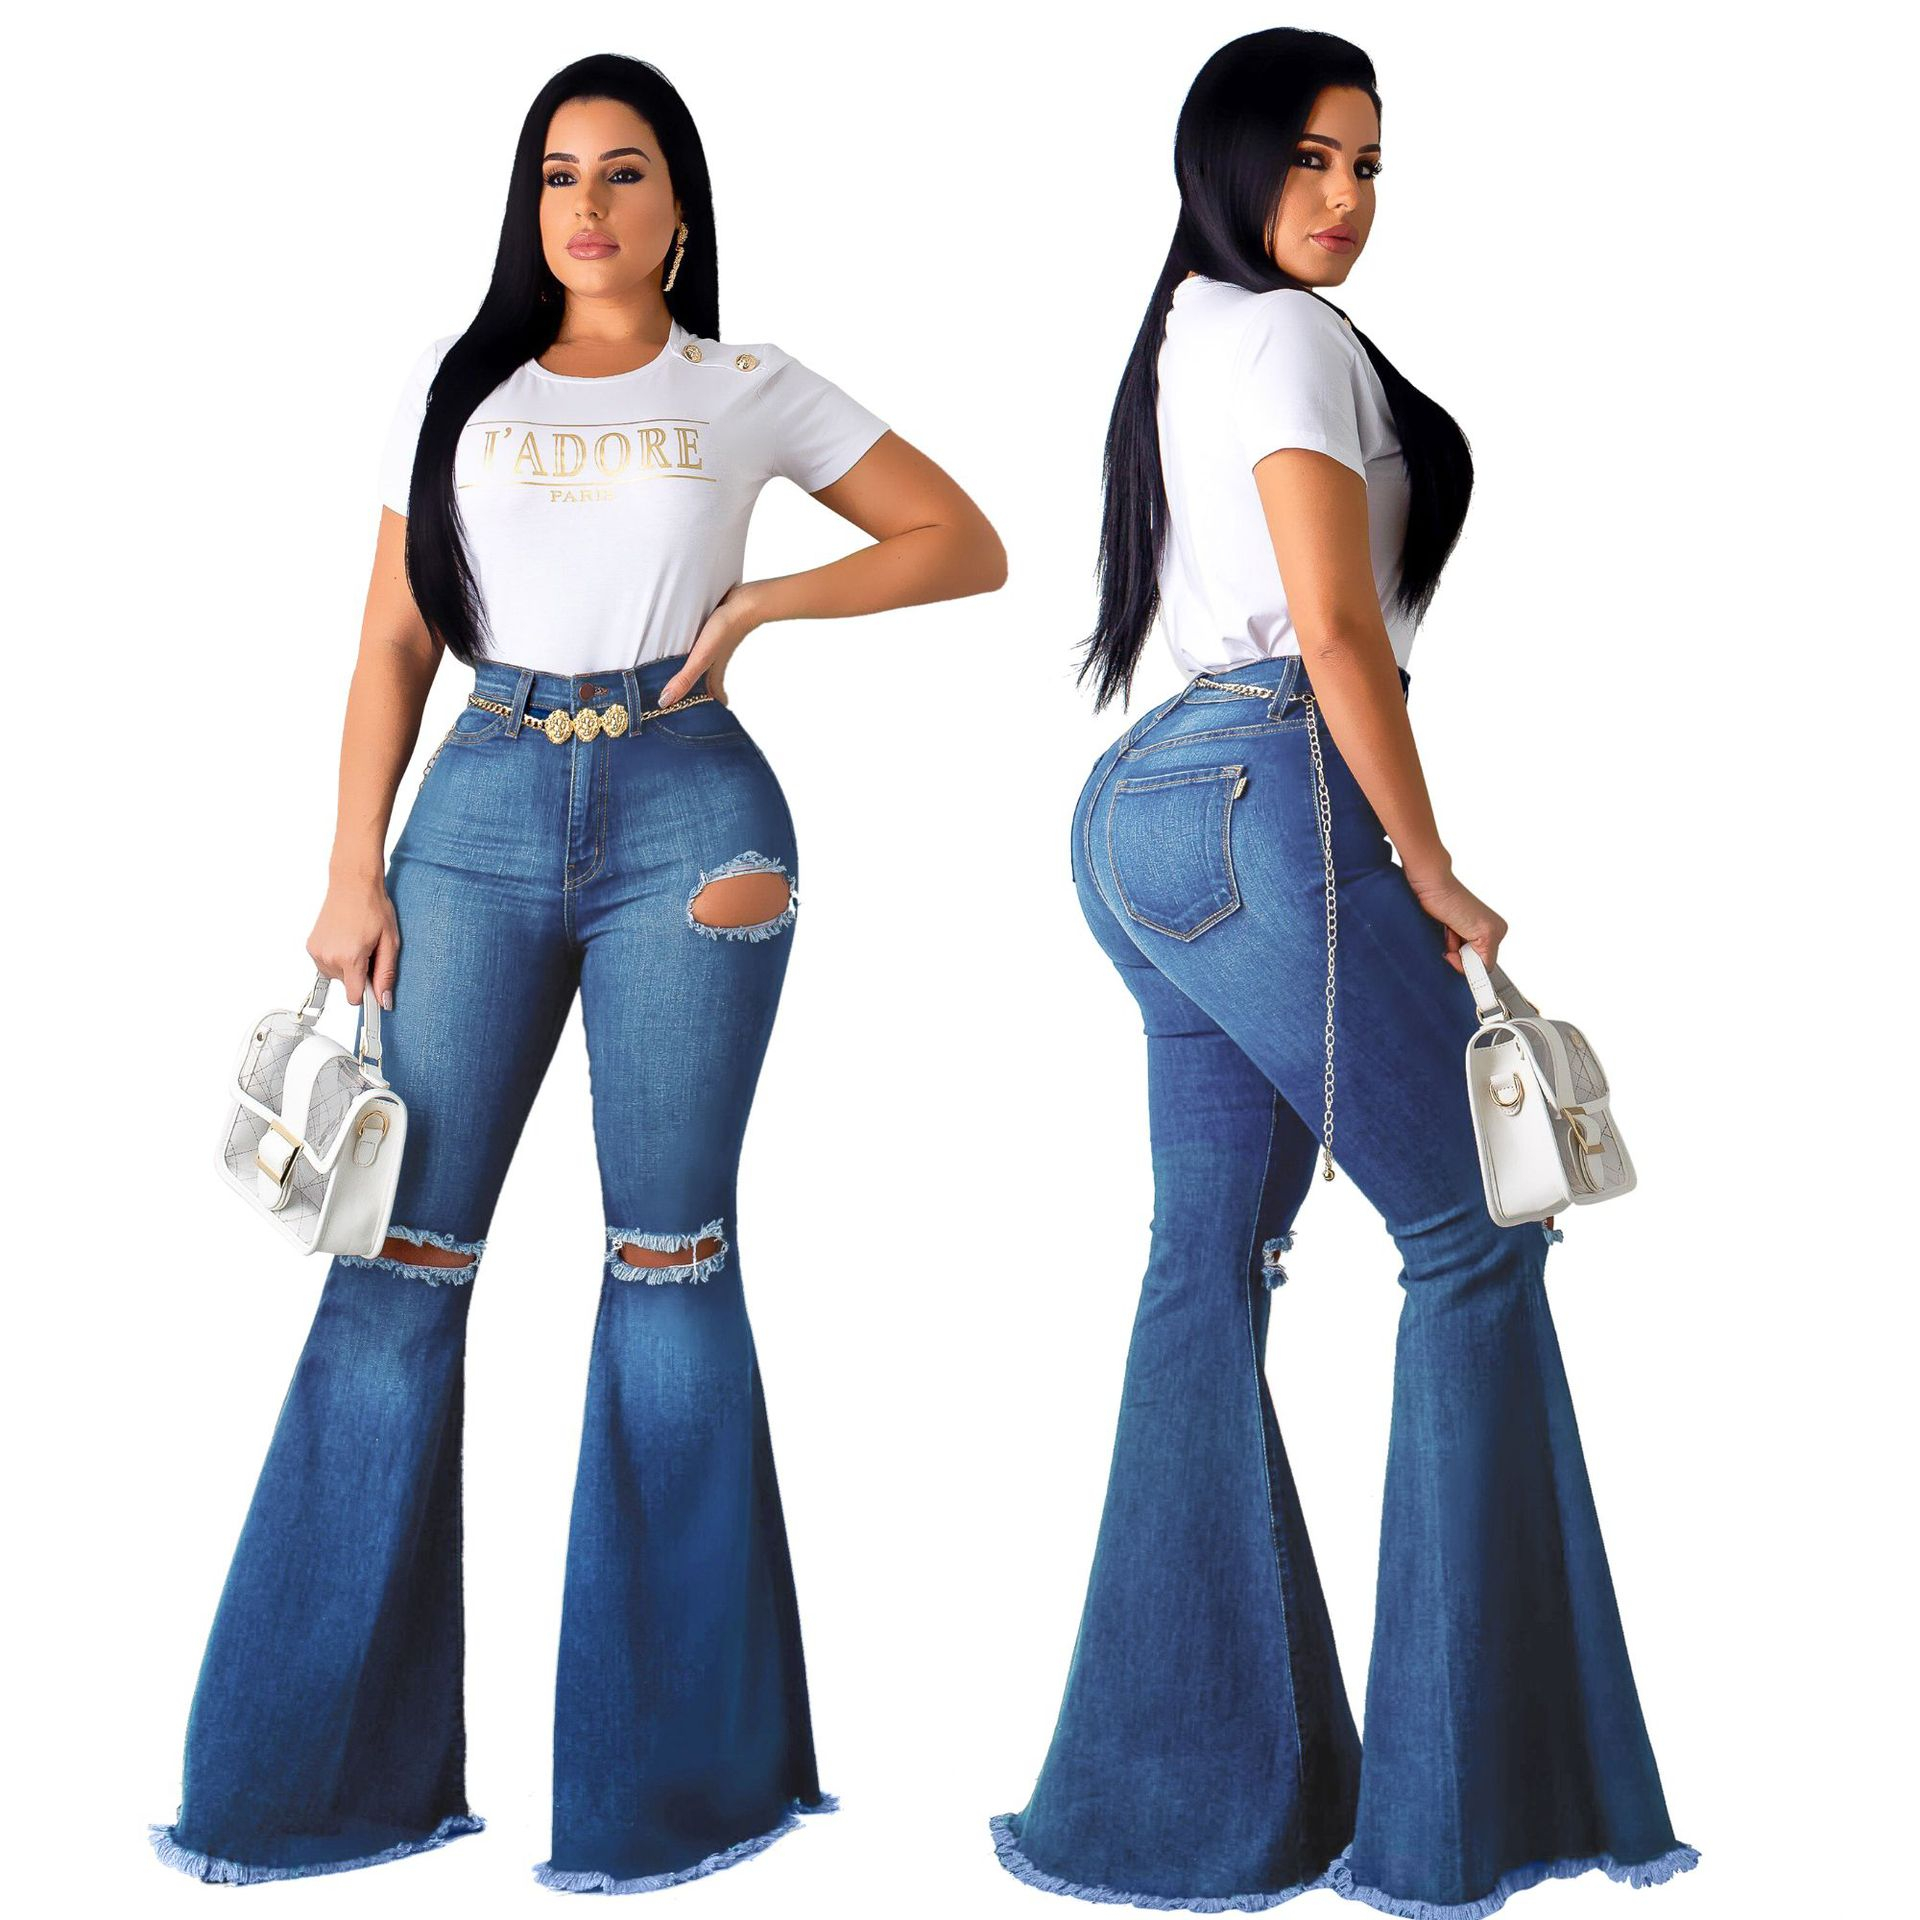 New Fashionable Female Flare Casual Ripped Jeans For Women High Waist Wash Denim Skinny Jeans Woman Wide Leg Plus Size Mom Jeans